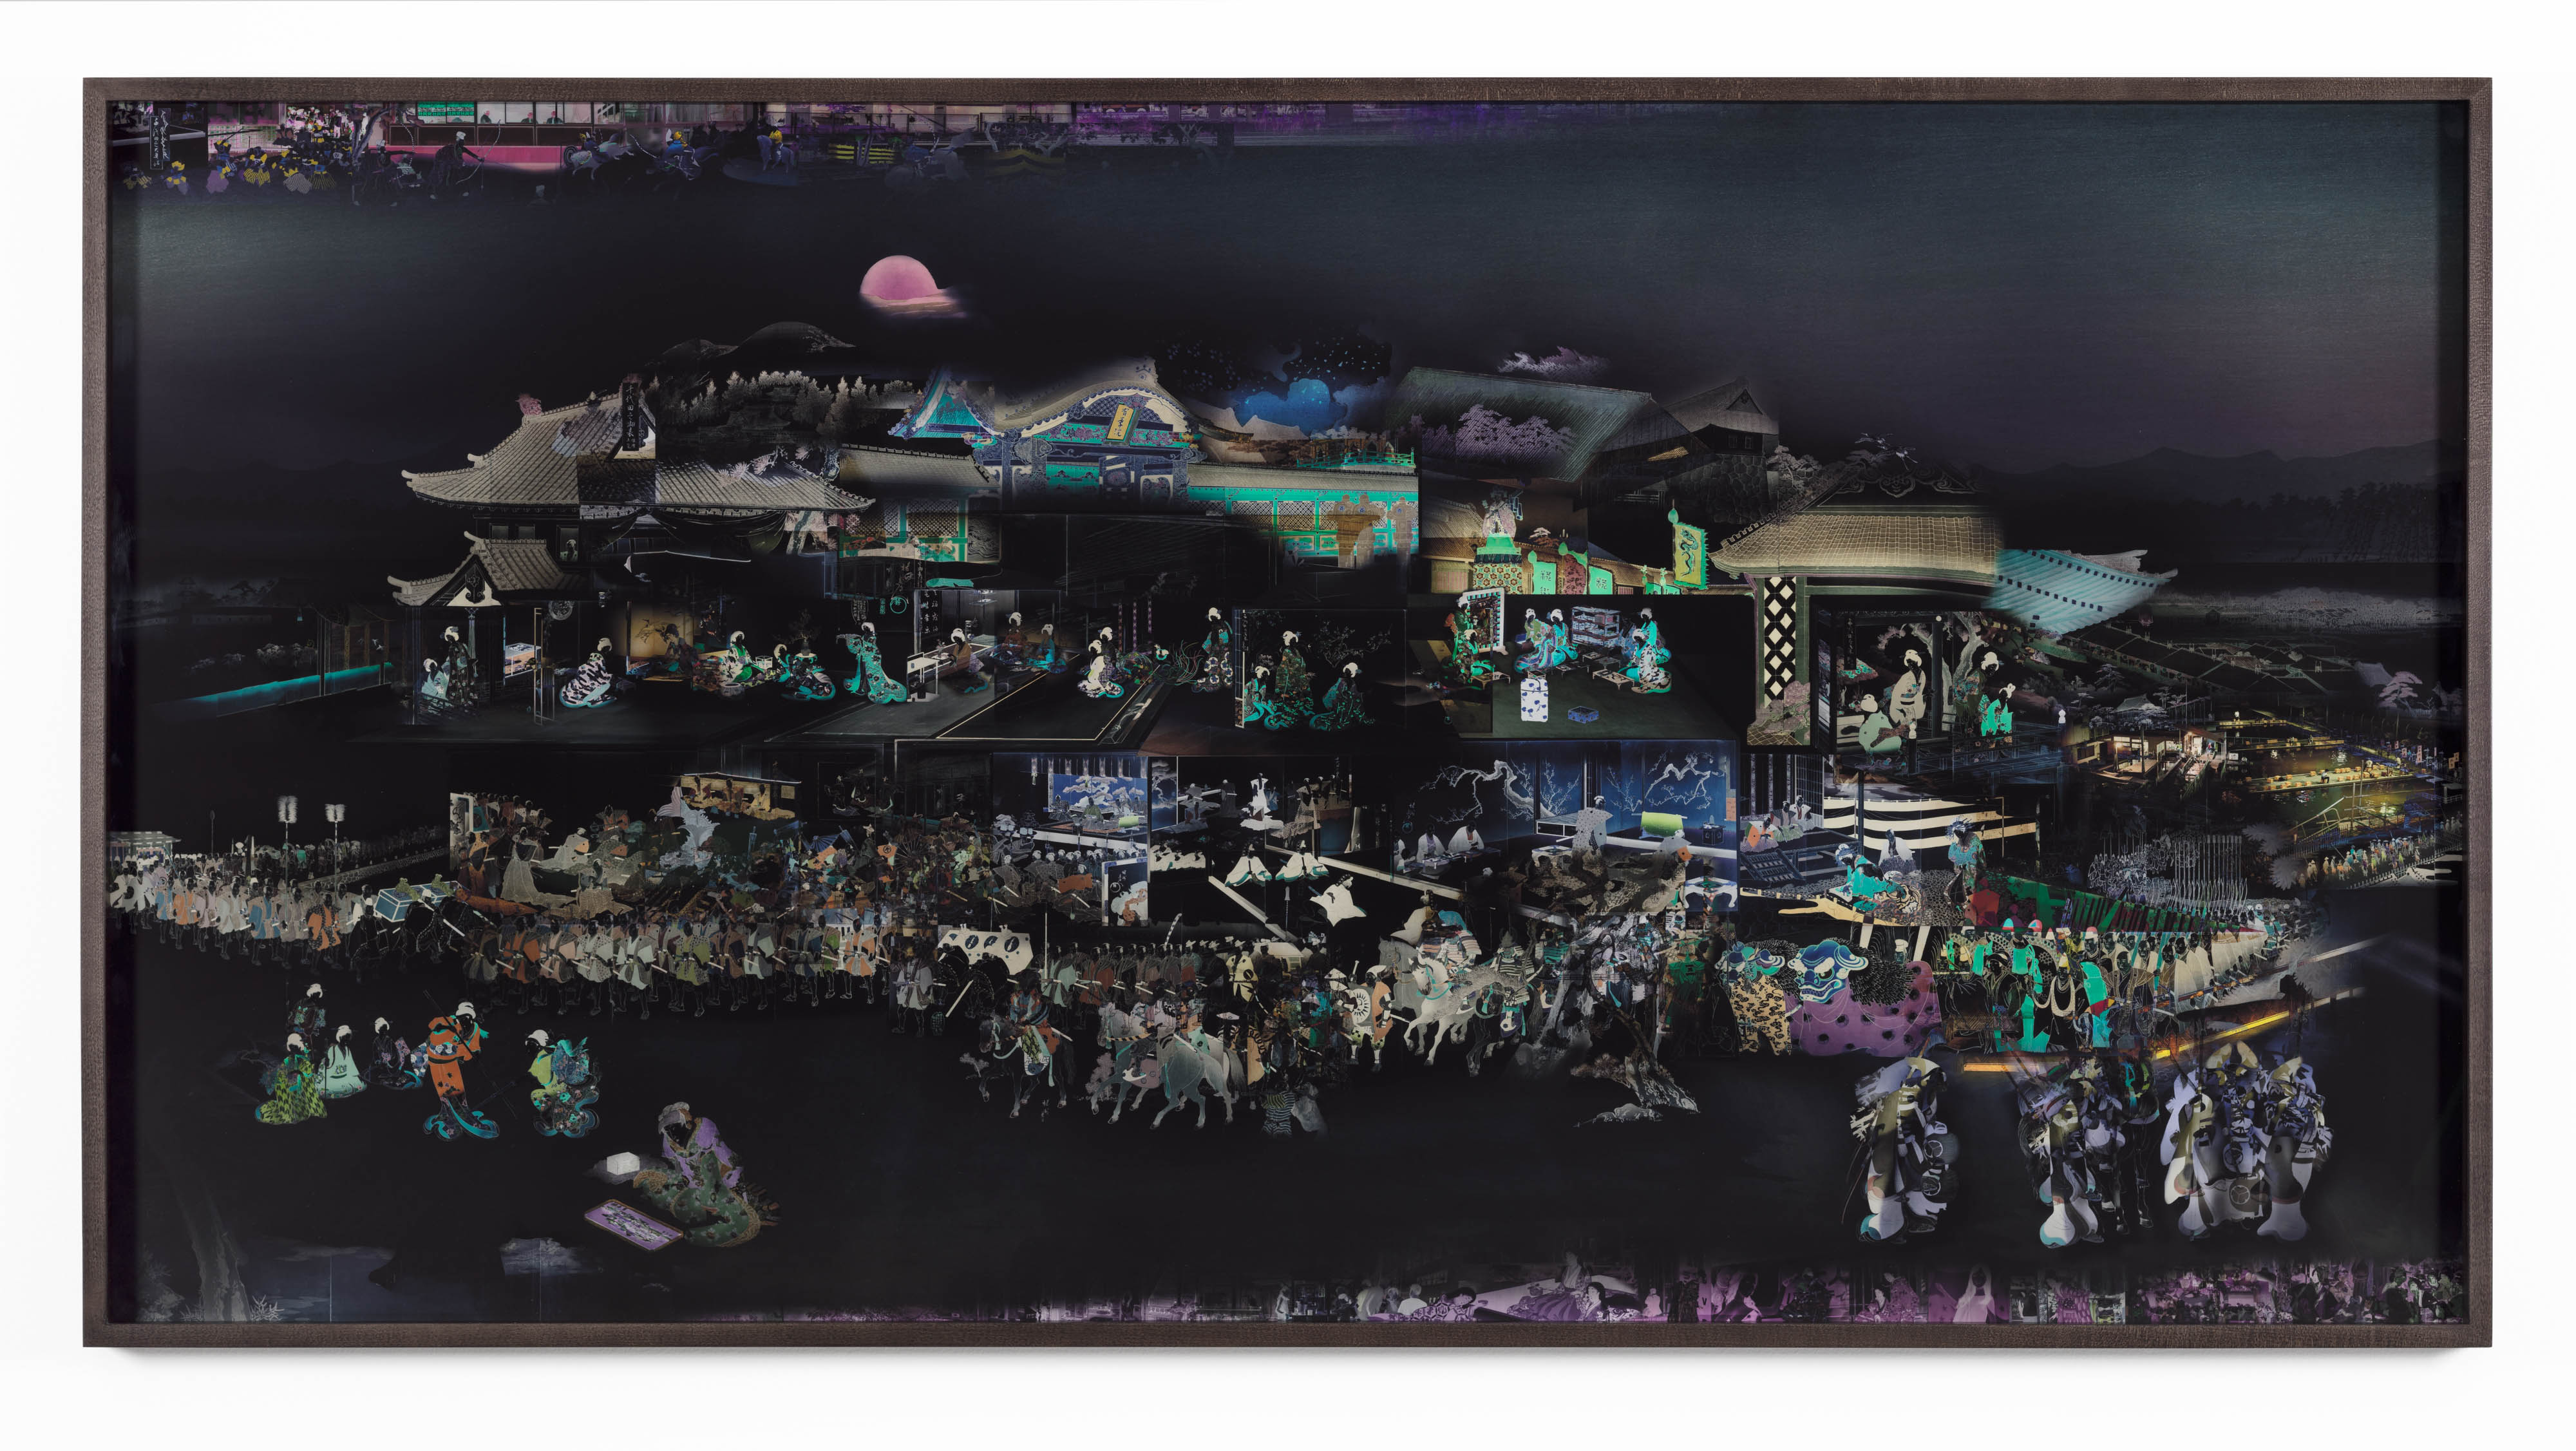 David Molander, Inre yttre palats I, 2017 Inkjet print, museum glass, oak frame 107 x 203 cm, edition of 5